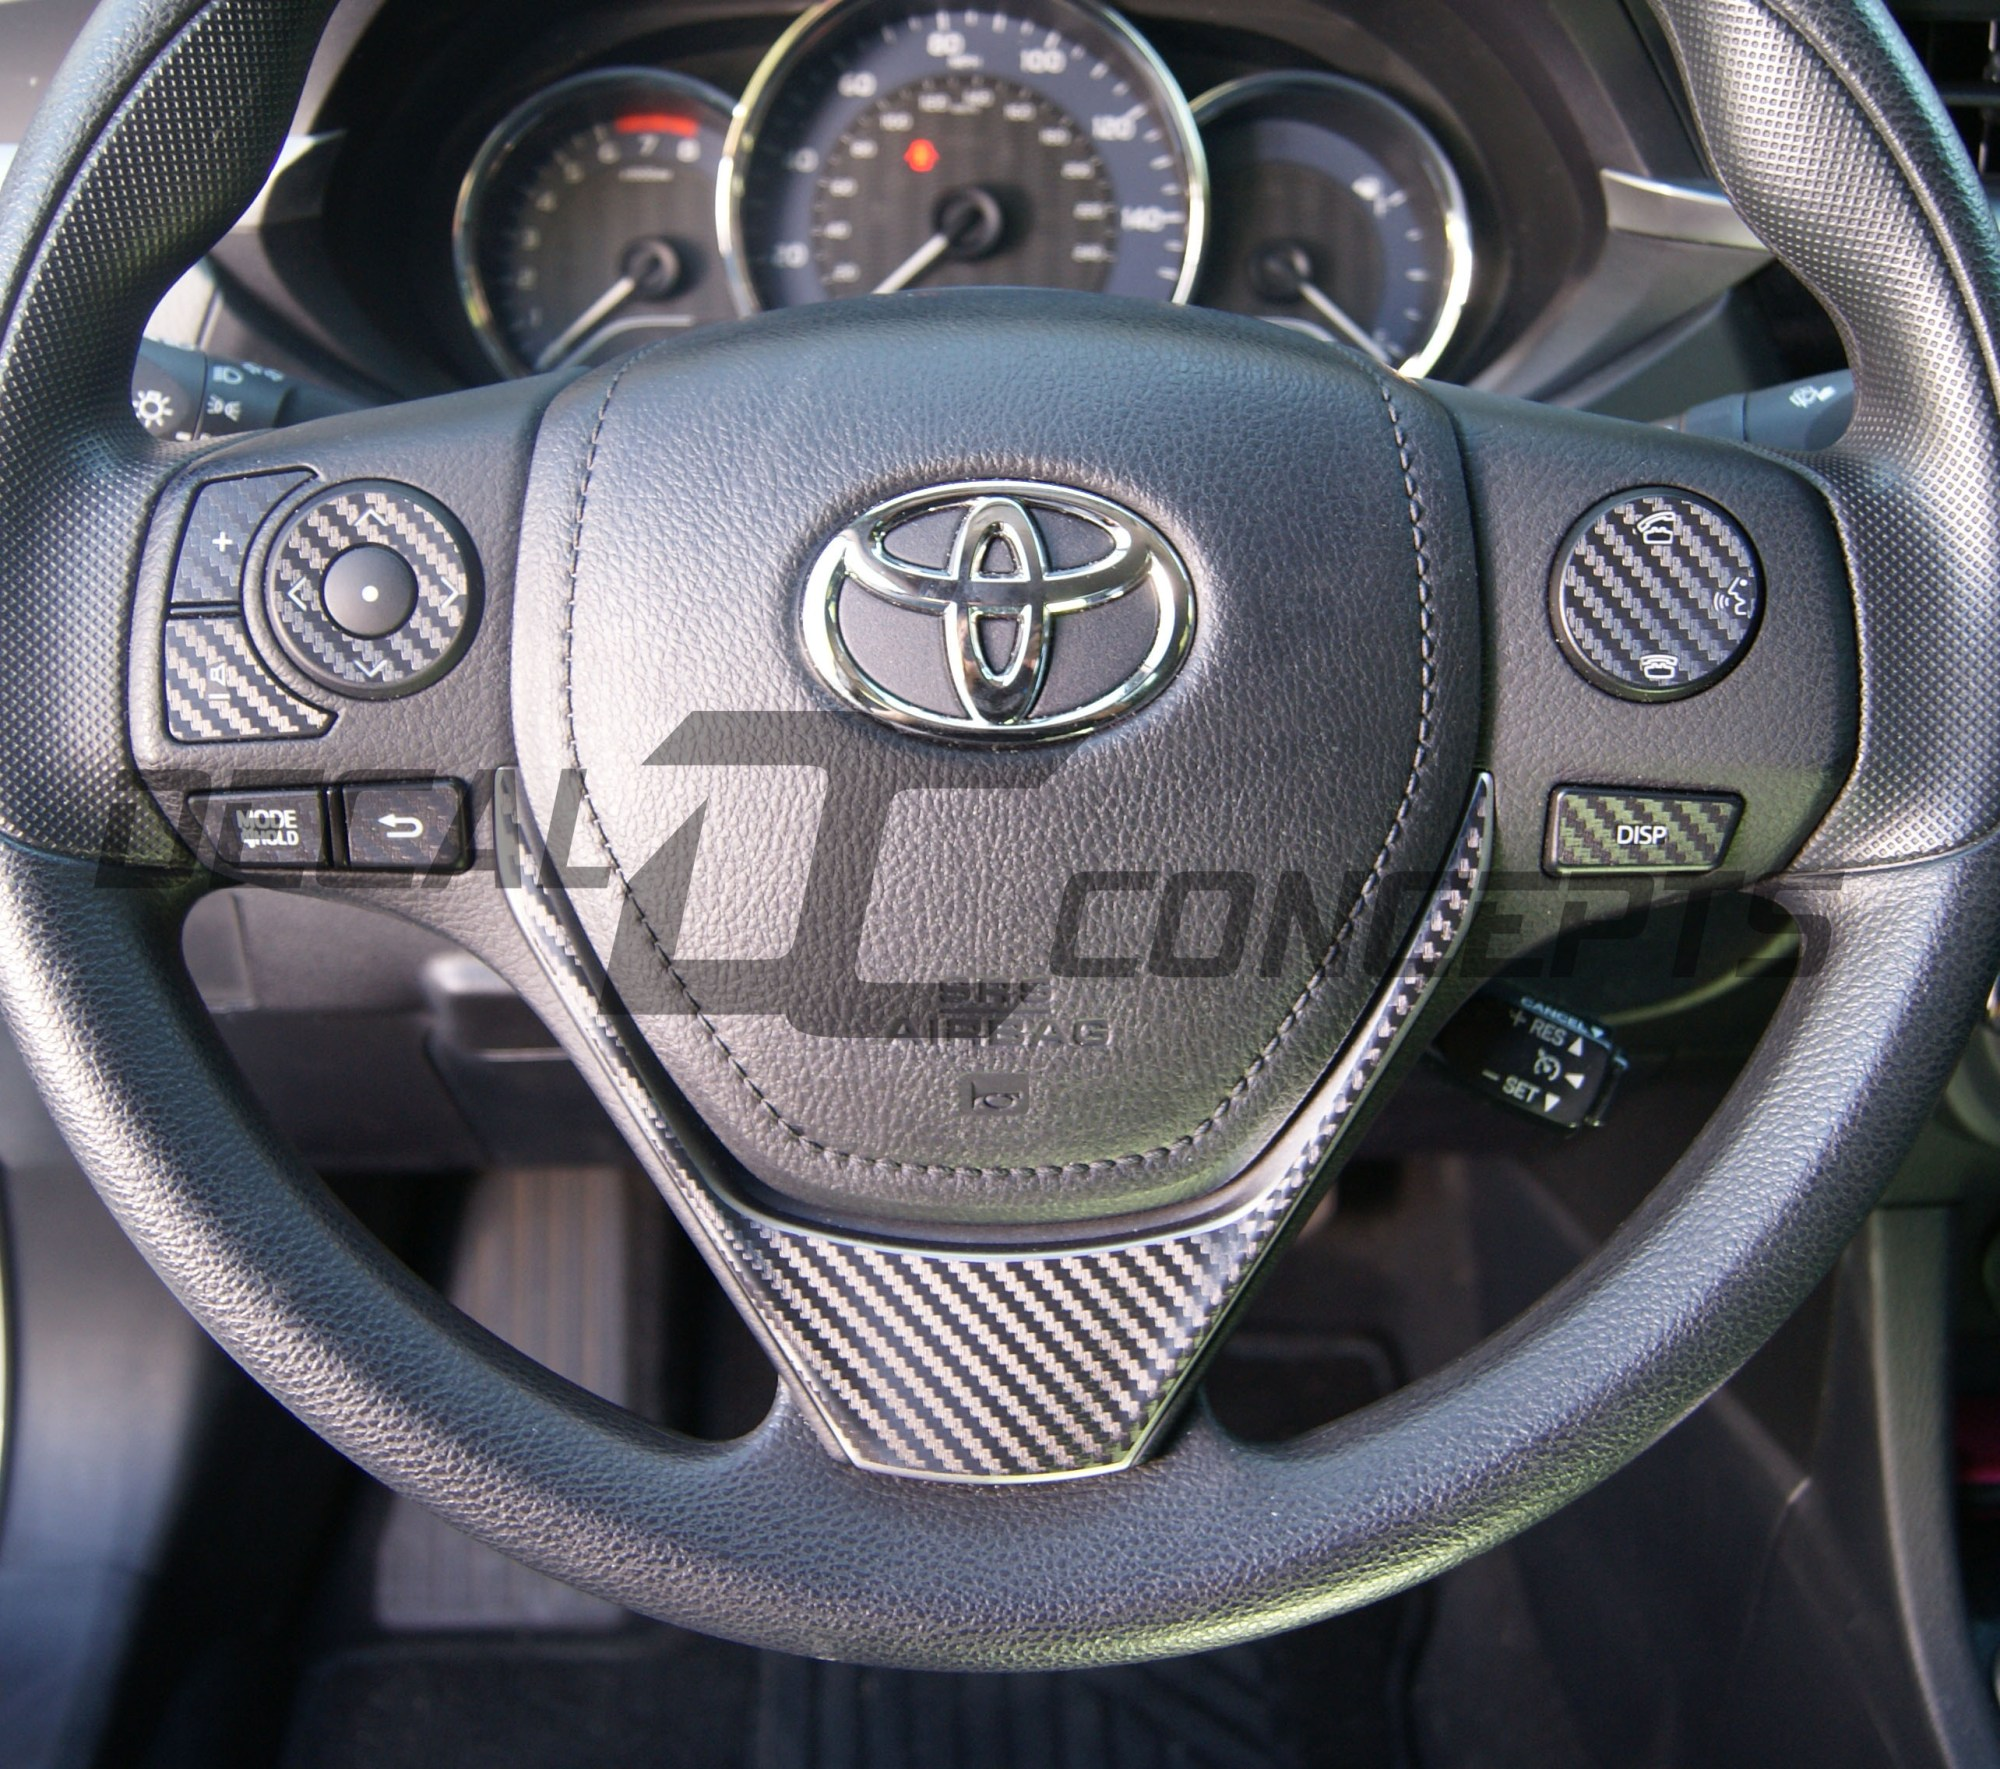 hight resolution of toyota corolla carbon fiber full steering wheel dress up decal kit 2014 2016 decal concepts